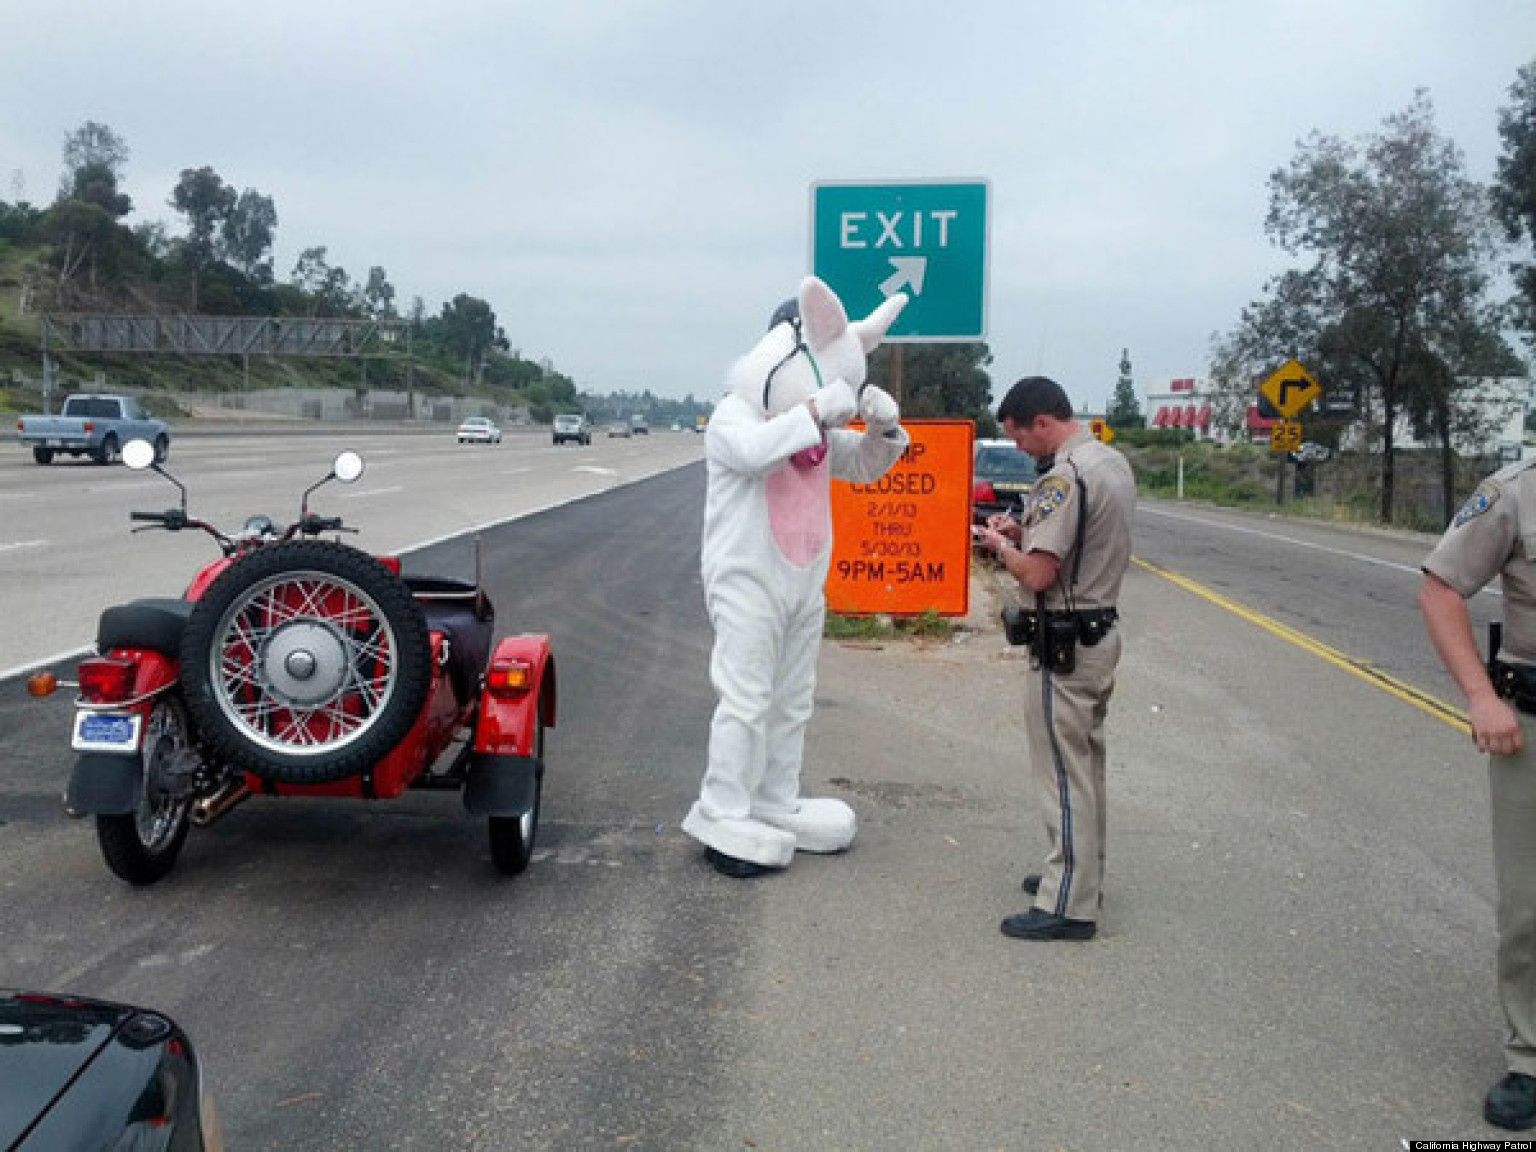 Easter Bunny Pulled Over: San Diego Officer Stops Rabbit On Motorcycle